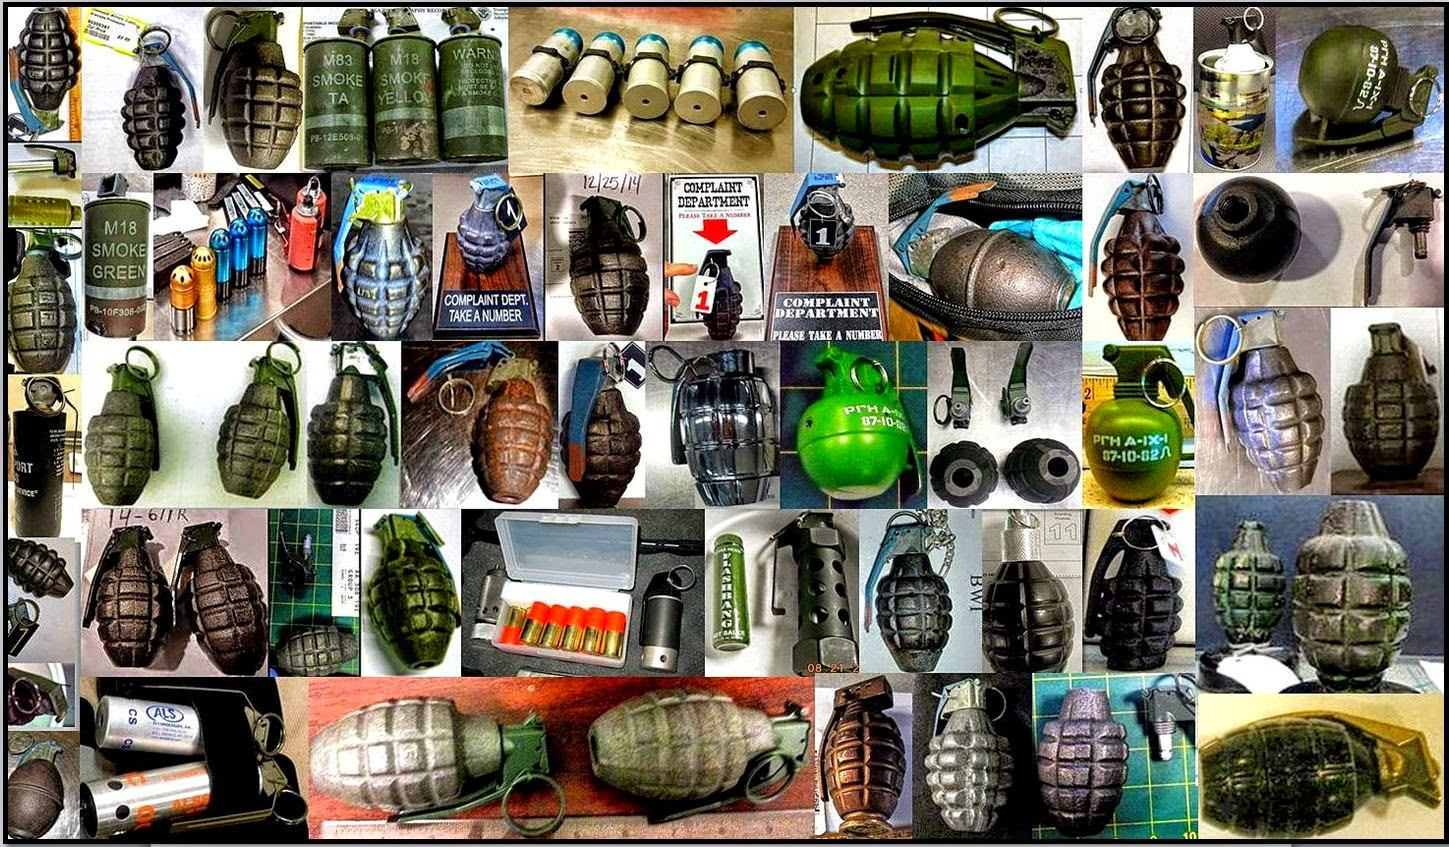 Over 140 inert/novelty hand grenades were discovered last year in both checked and carry-on bags.